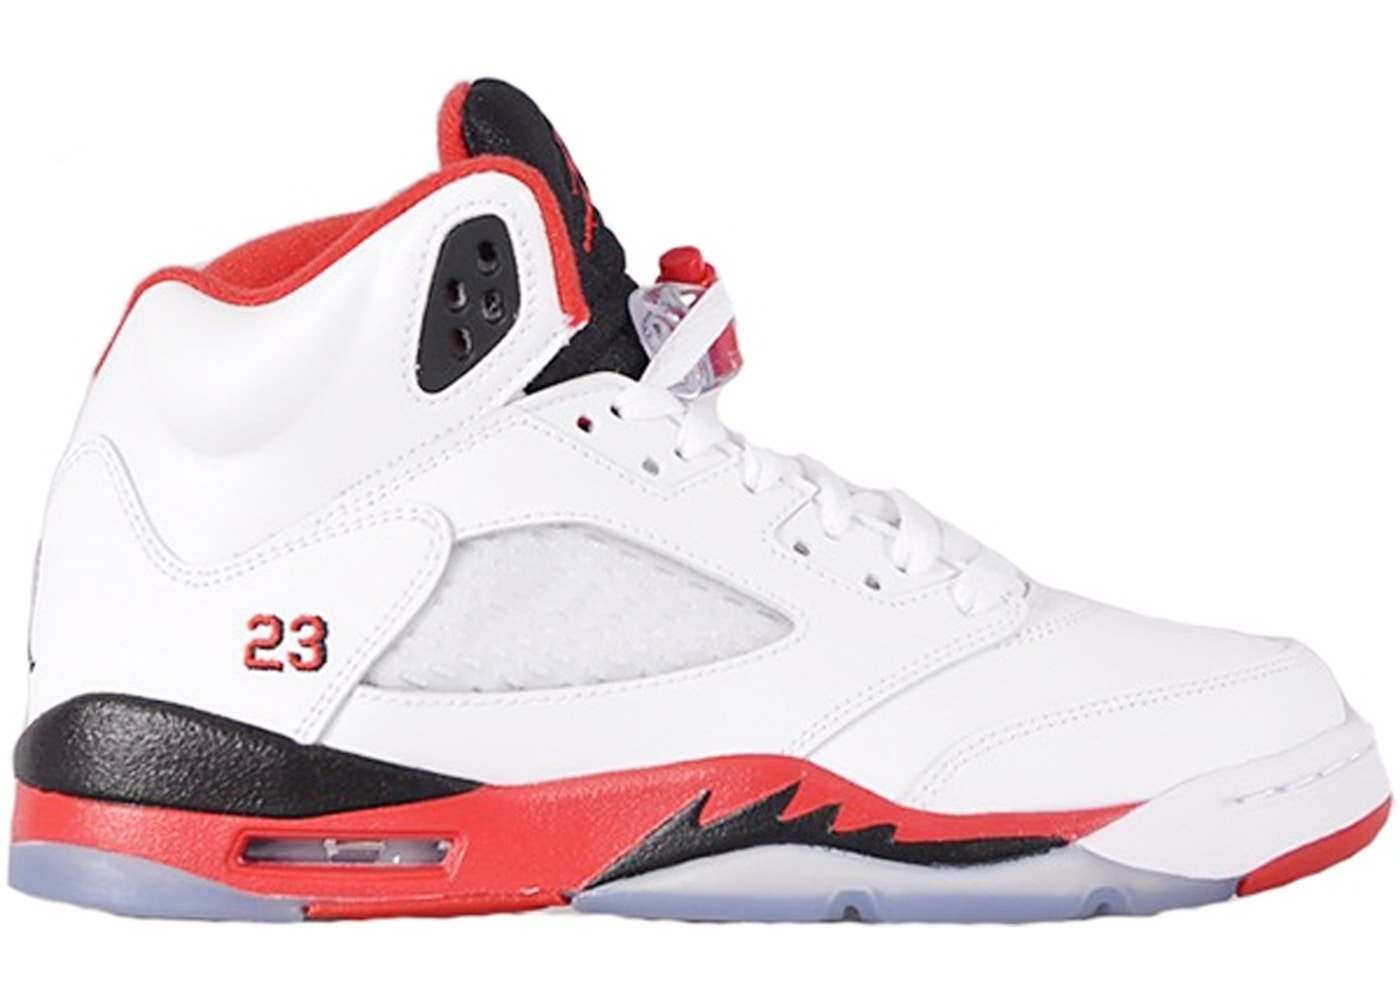 c8511662 Jordan 5 Retro Fire Red Black Tongue 2013 (GS) - 440888-120